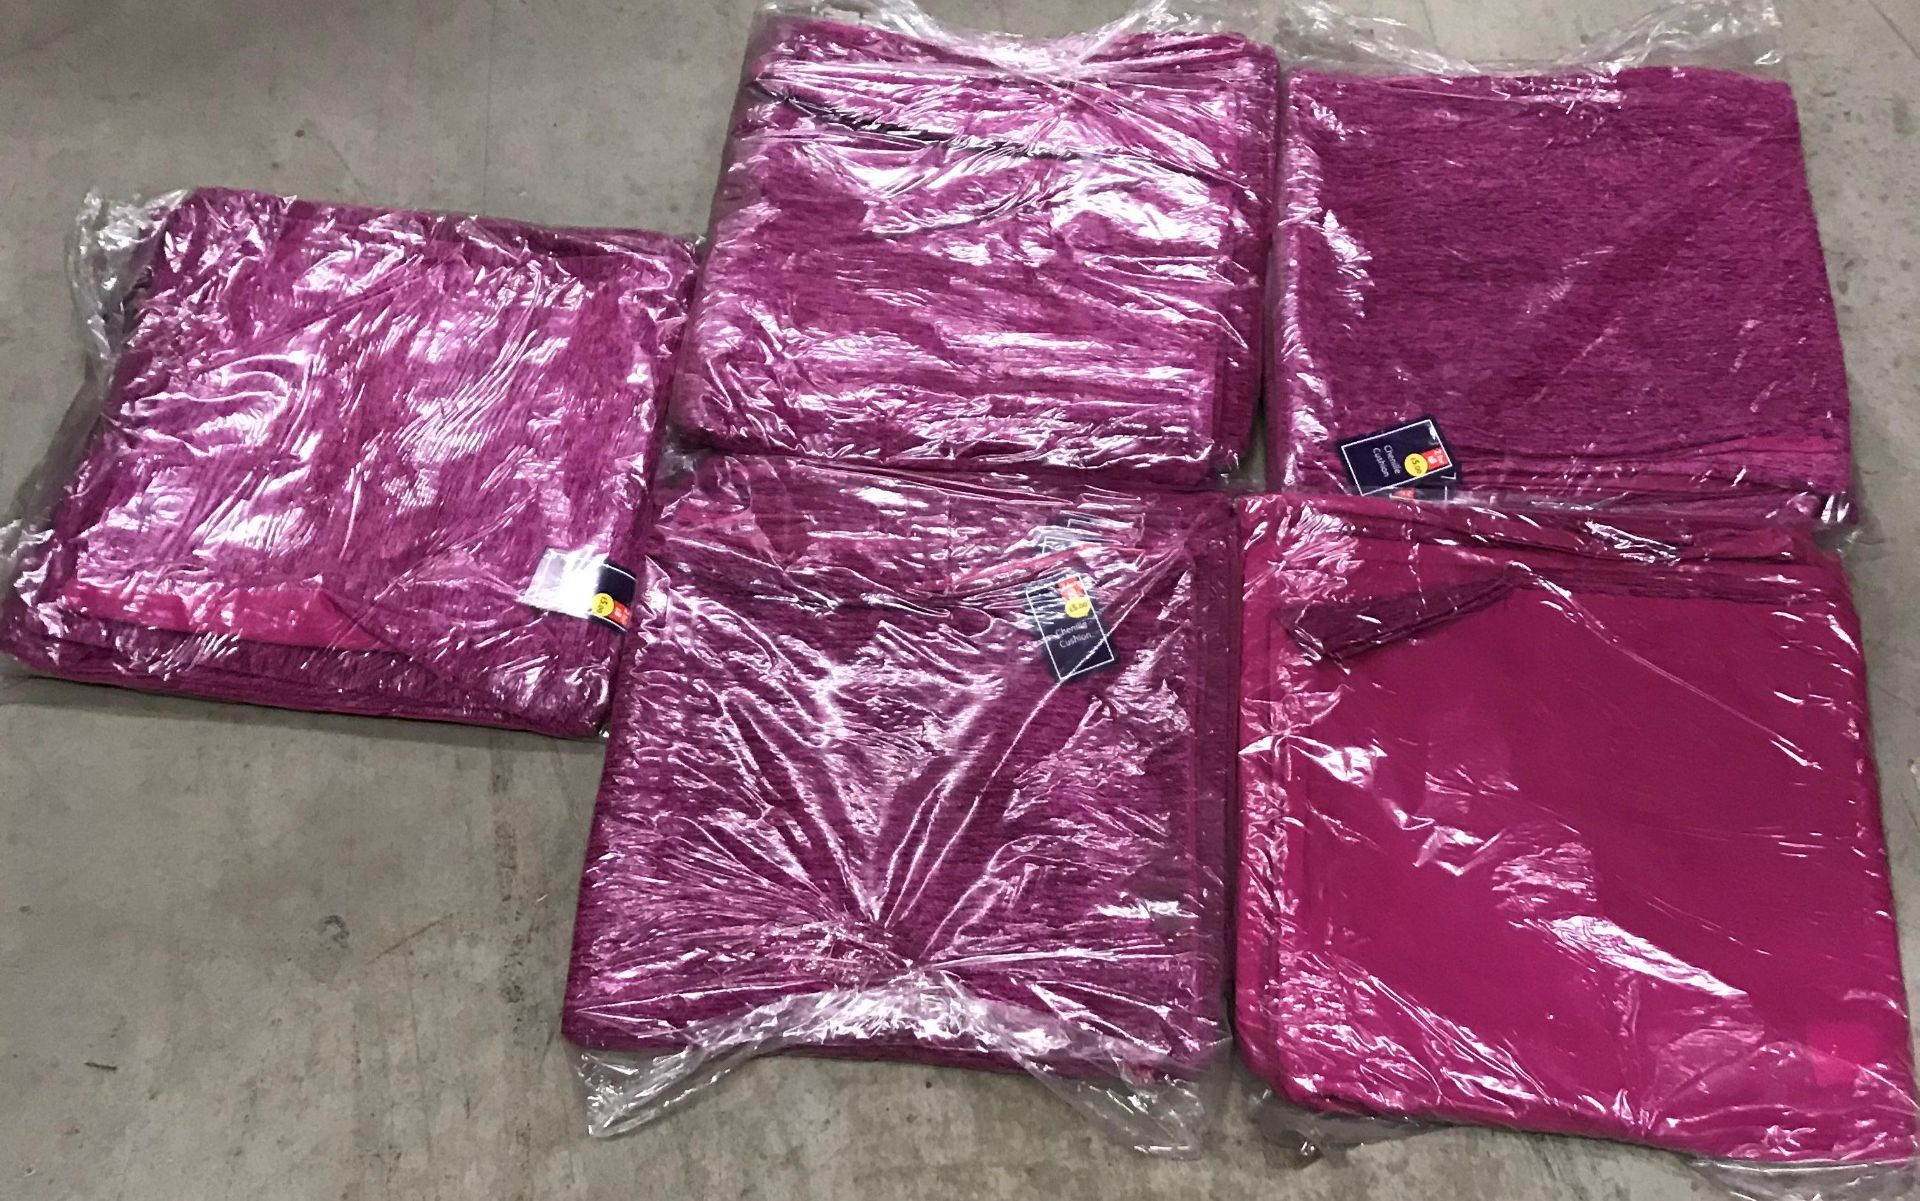 4 x packs of 8 chenille cushion covers in plum - 40 x 40cm - Image 3 of 3